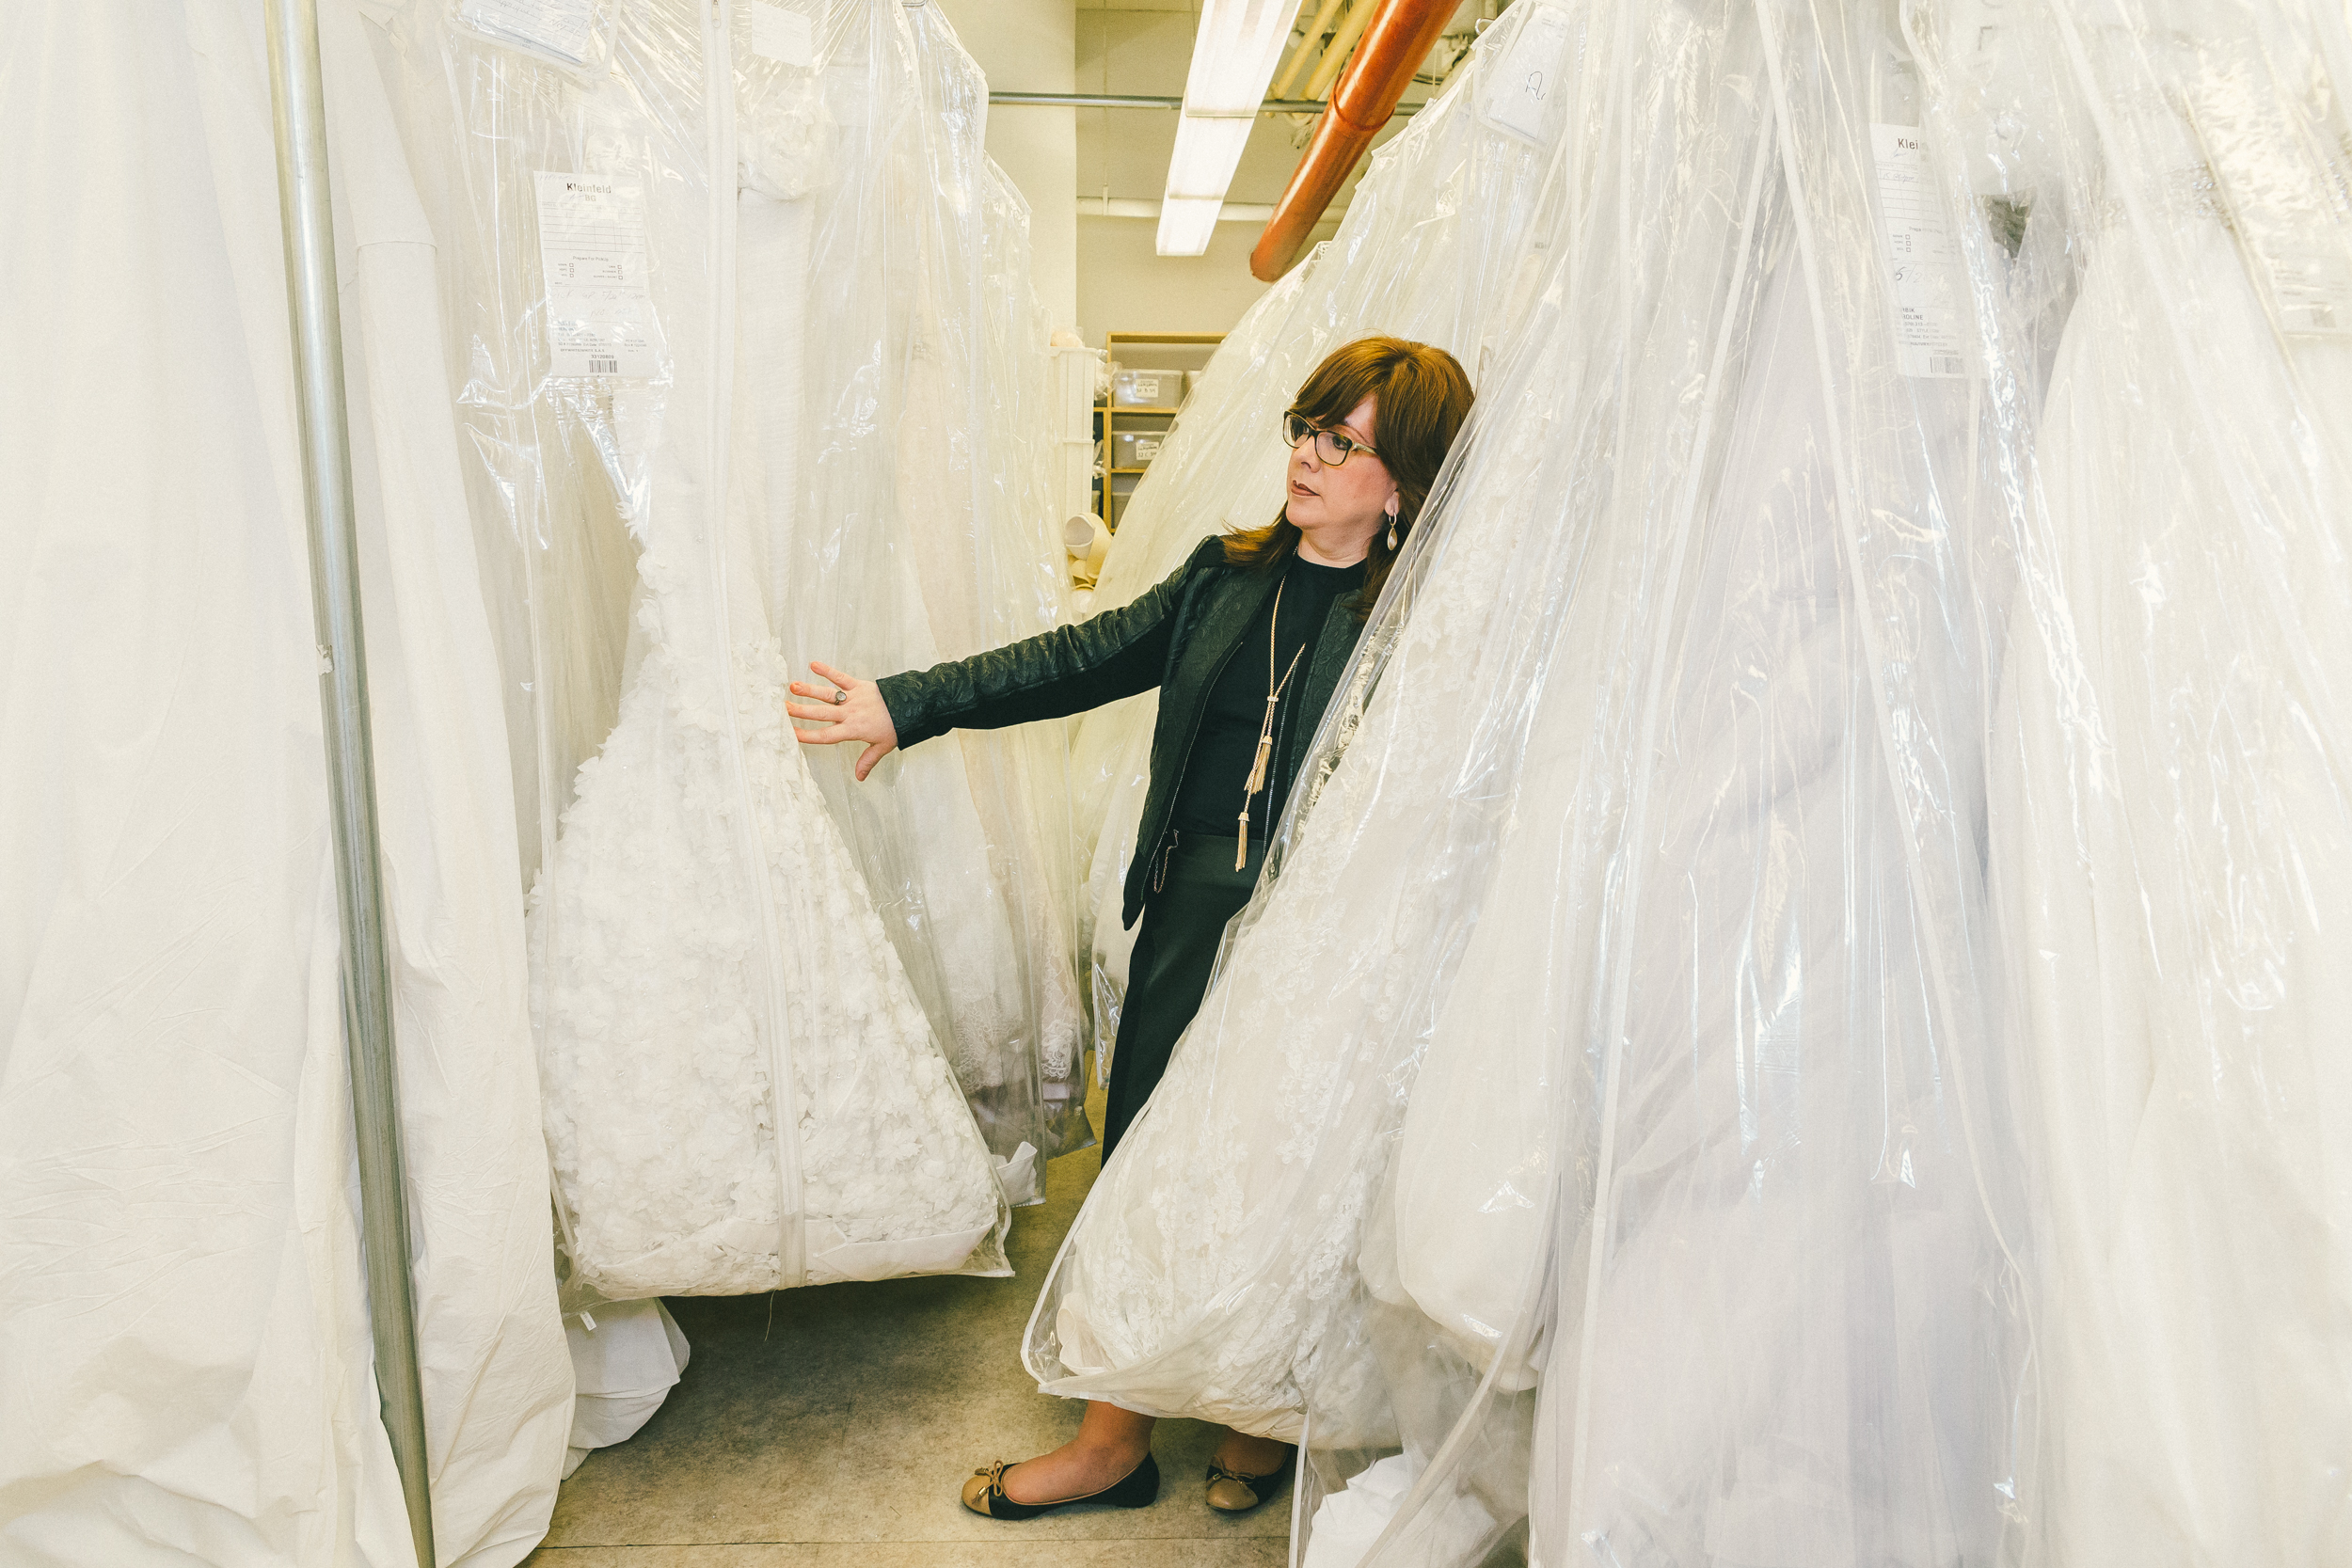 The dress is white - During Her Two Decades At Kleinfeld Katz Has Worked With Women From A Wide Array Of Backgrounds She S Learned The Different Set Of Modesty Rules That Come